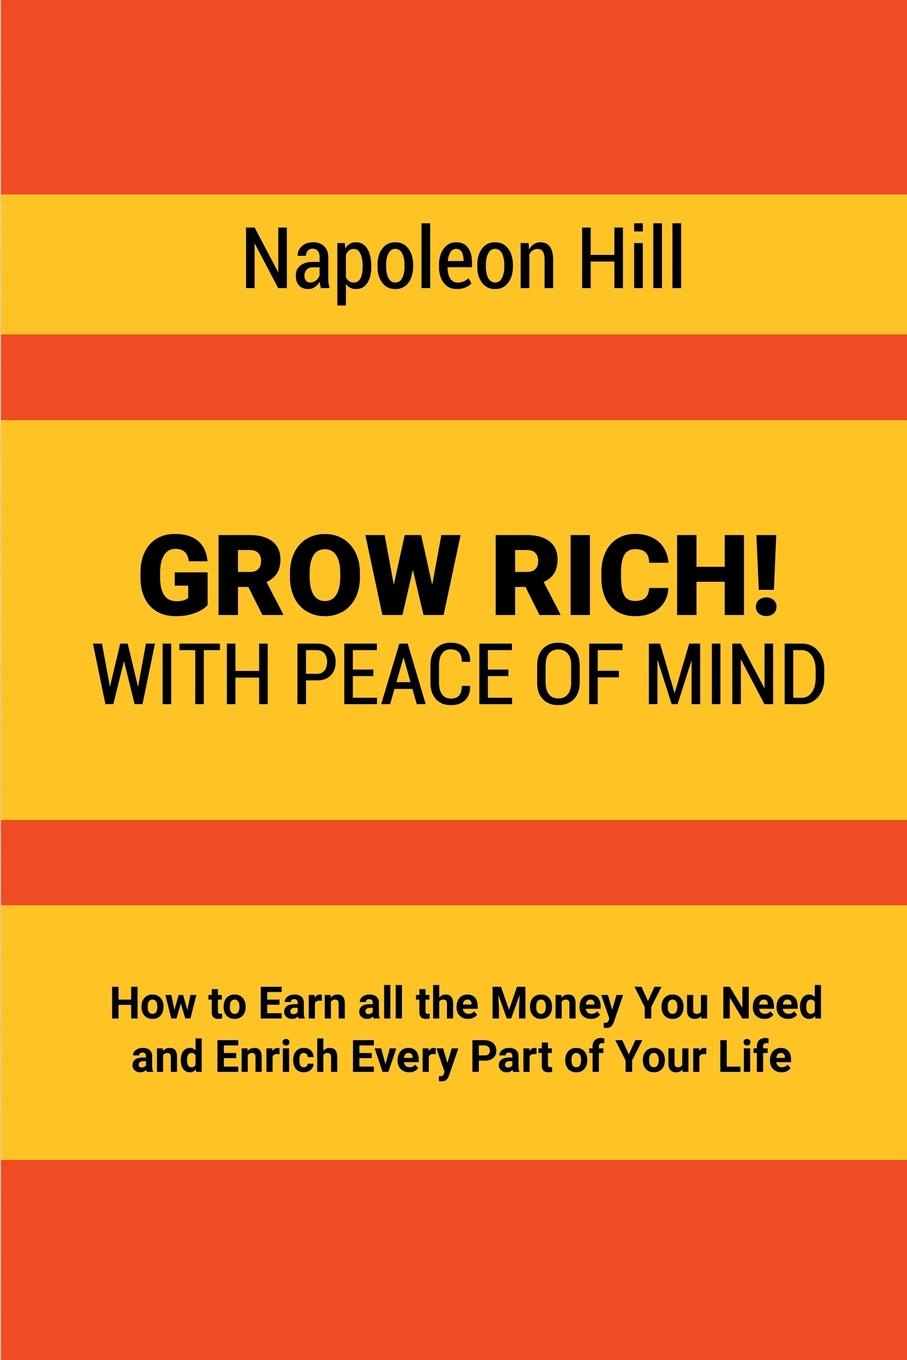 Napoleon Hill Grow Rich!. With Peace of Mind - How to Earn all the Money You Need and Enrich Every Part of Your Life al trumpa love and grow rich 17 golden rules for your success original pack